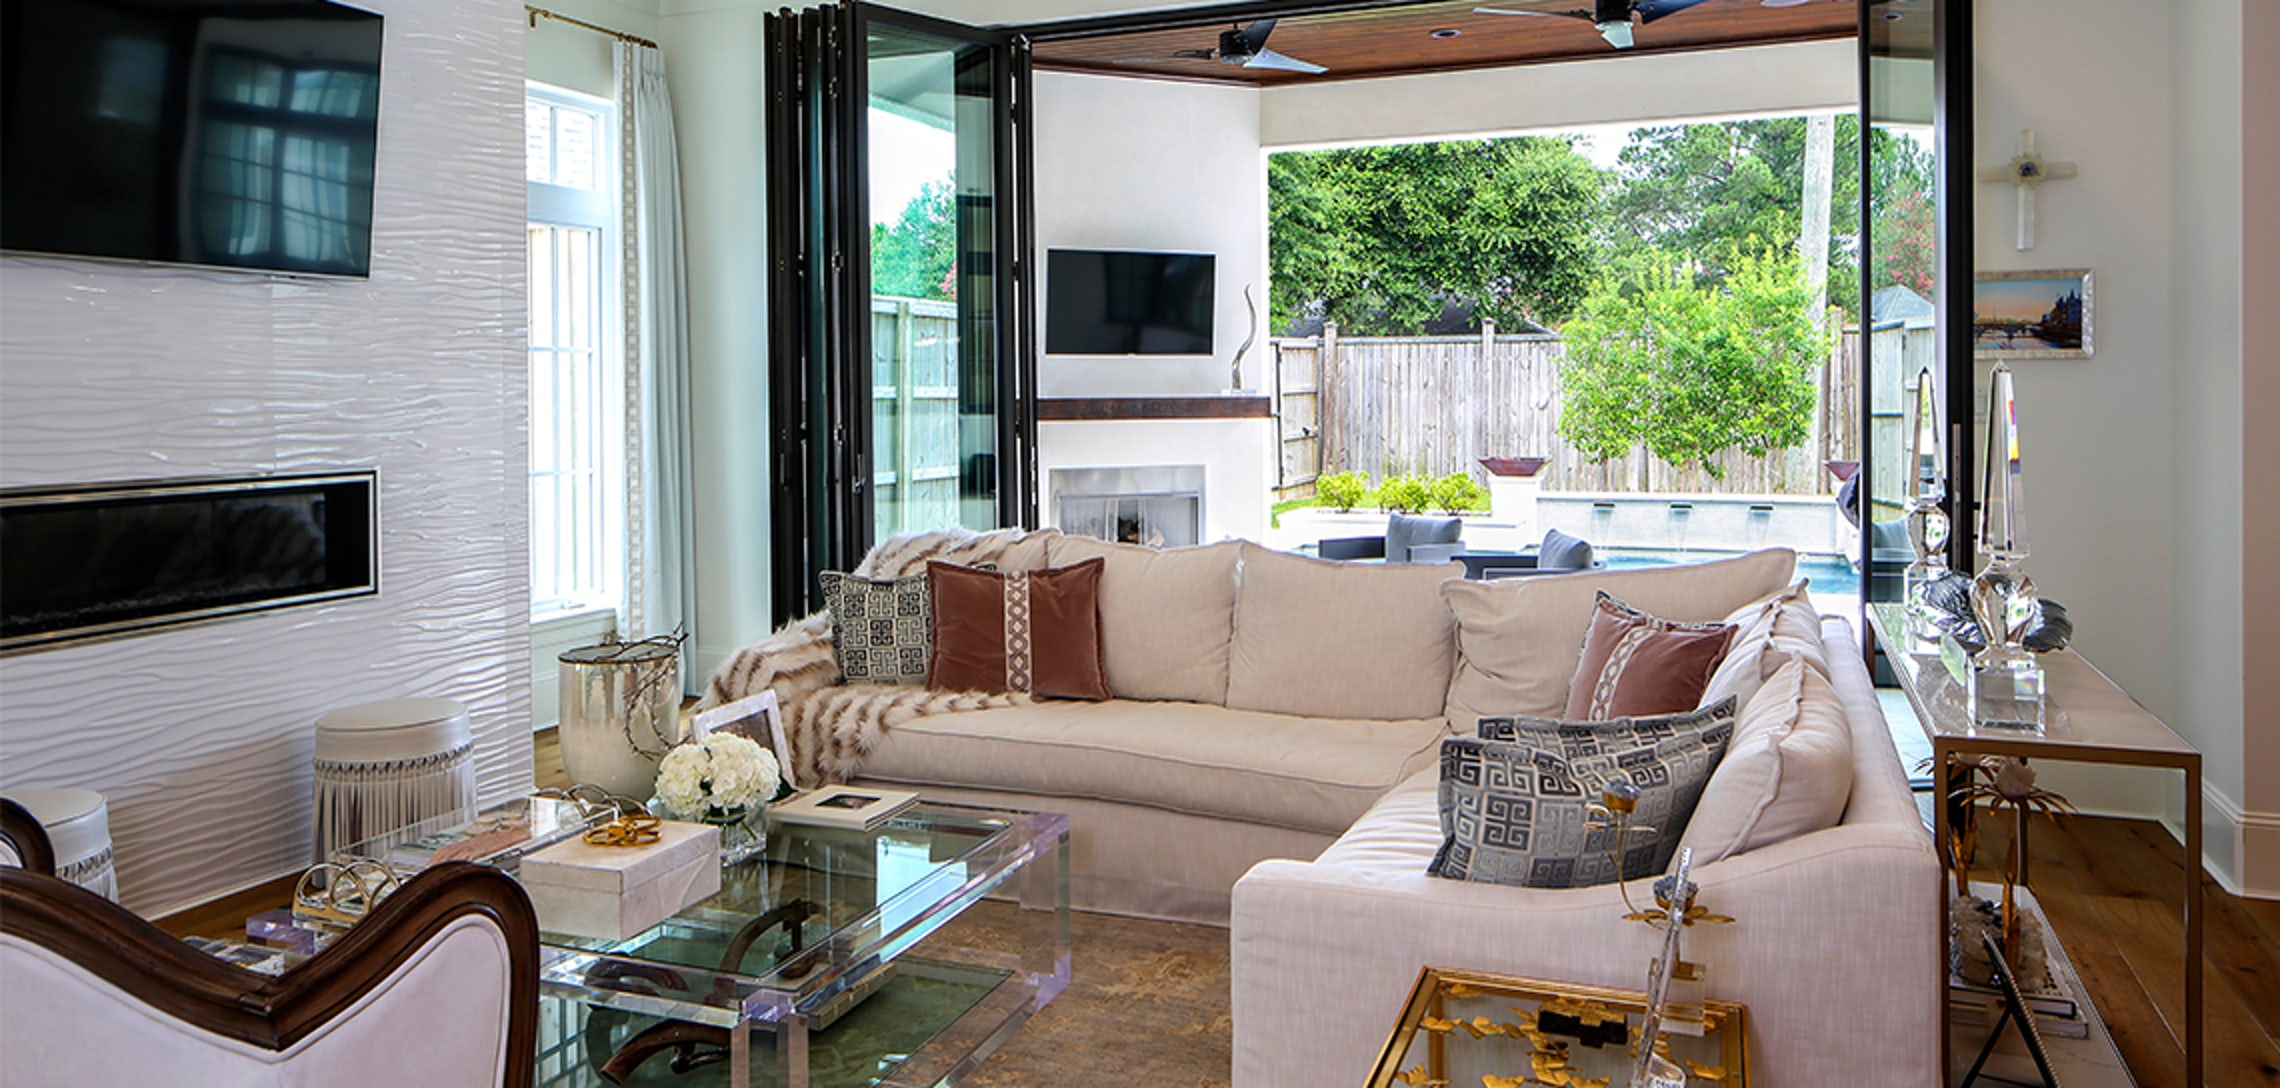 Inside out: A home embraces the sights of summer - inRegister